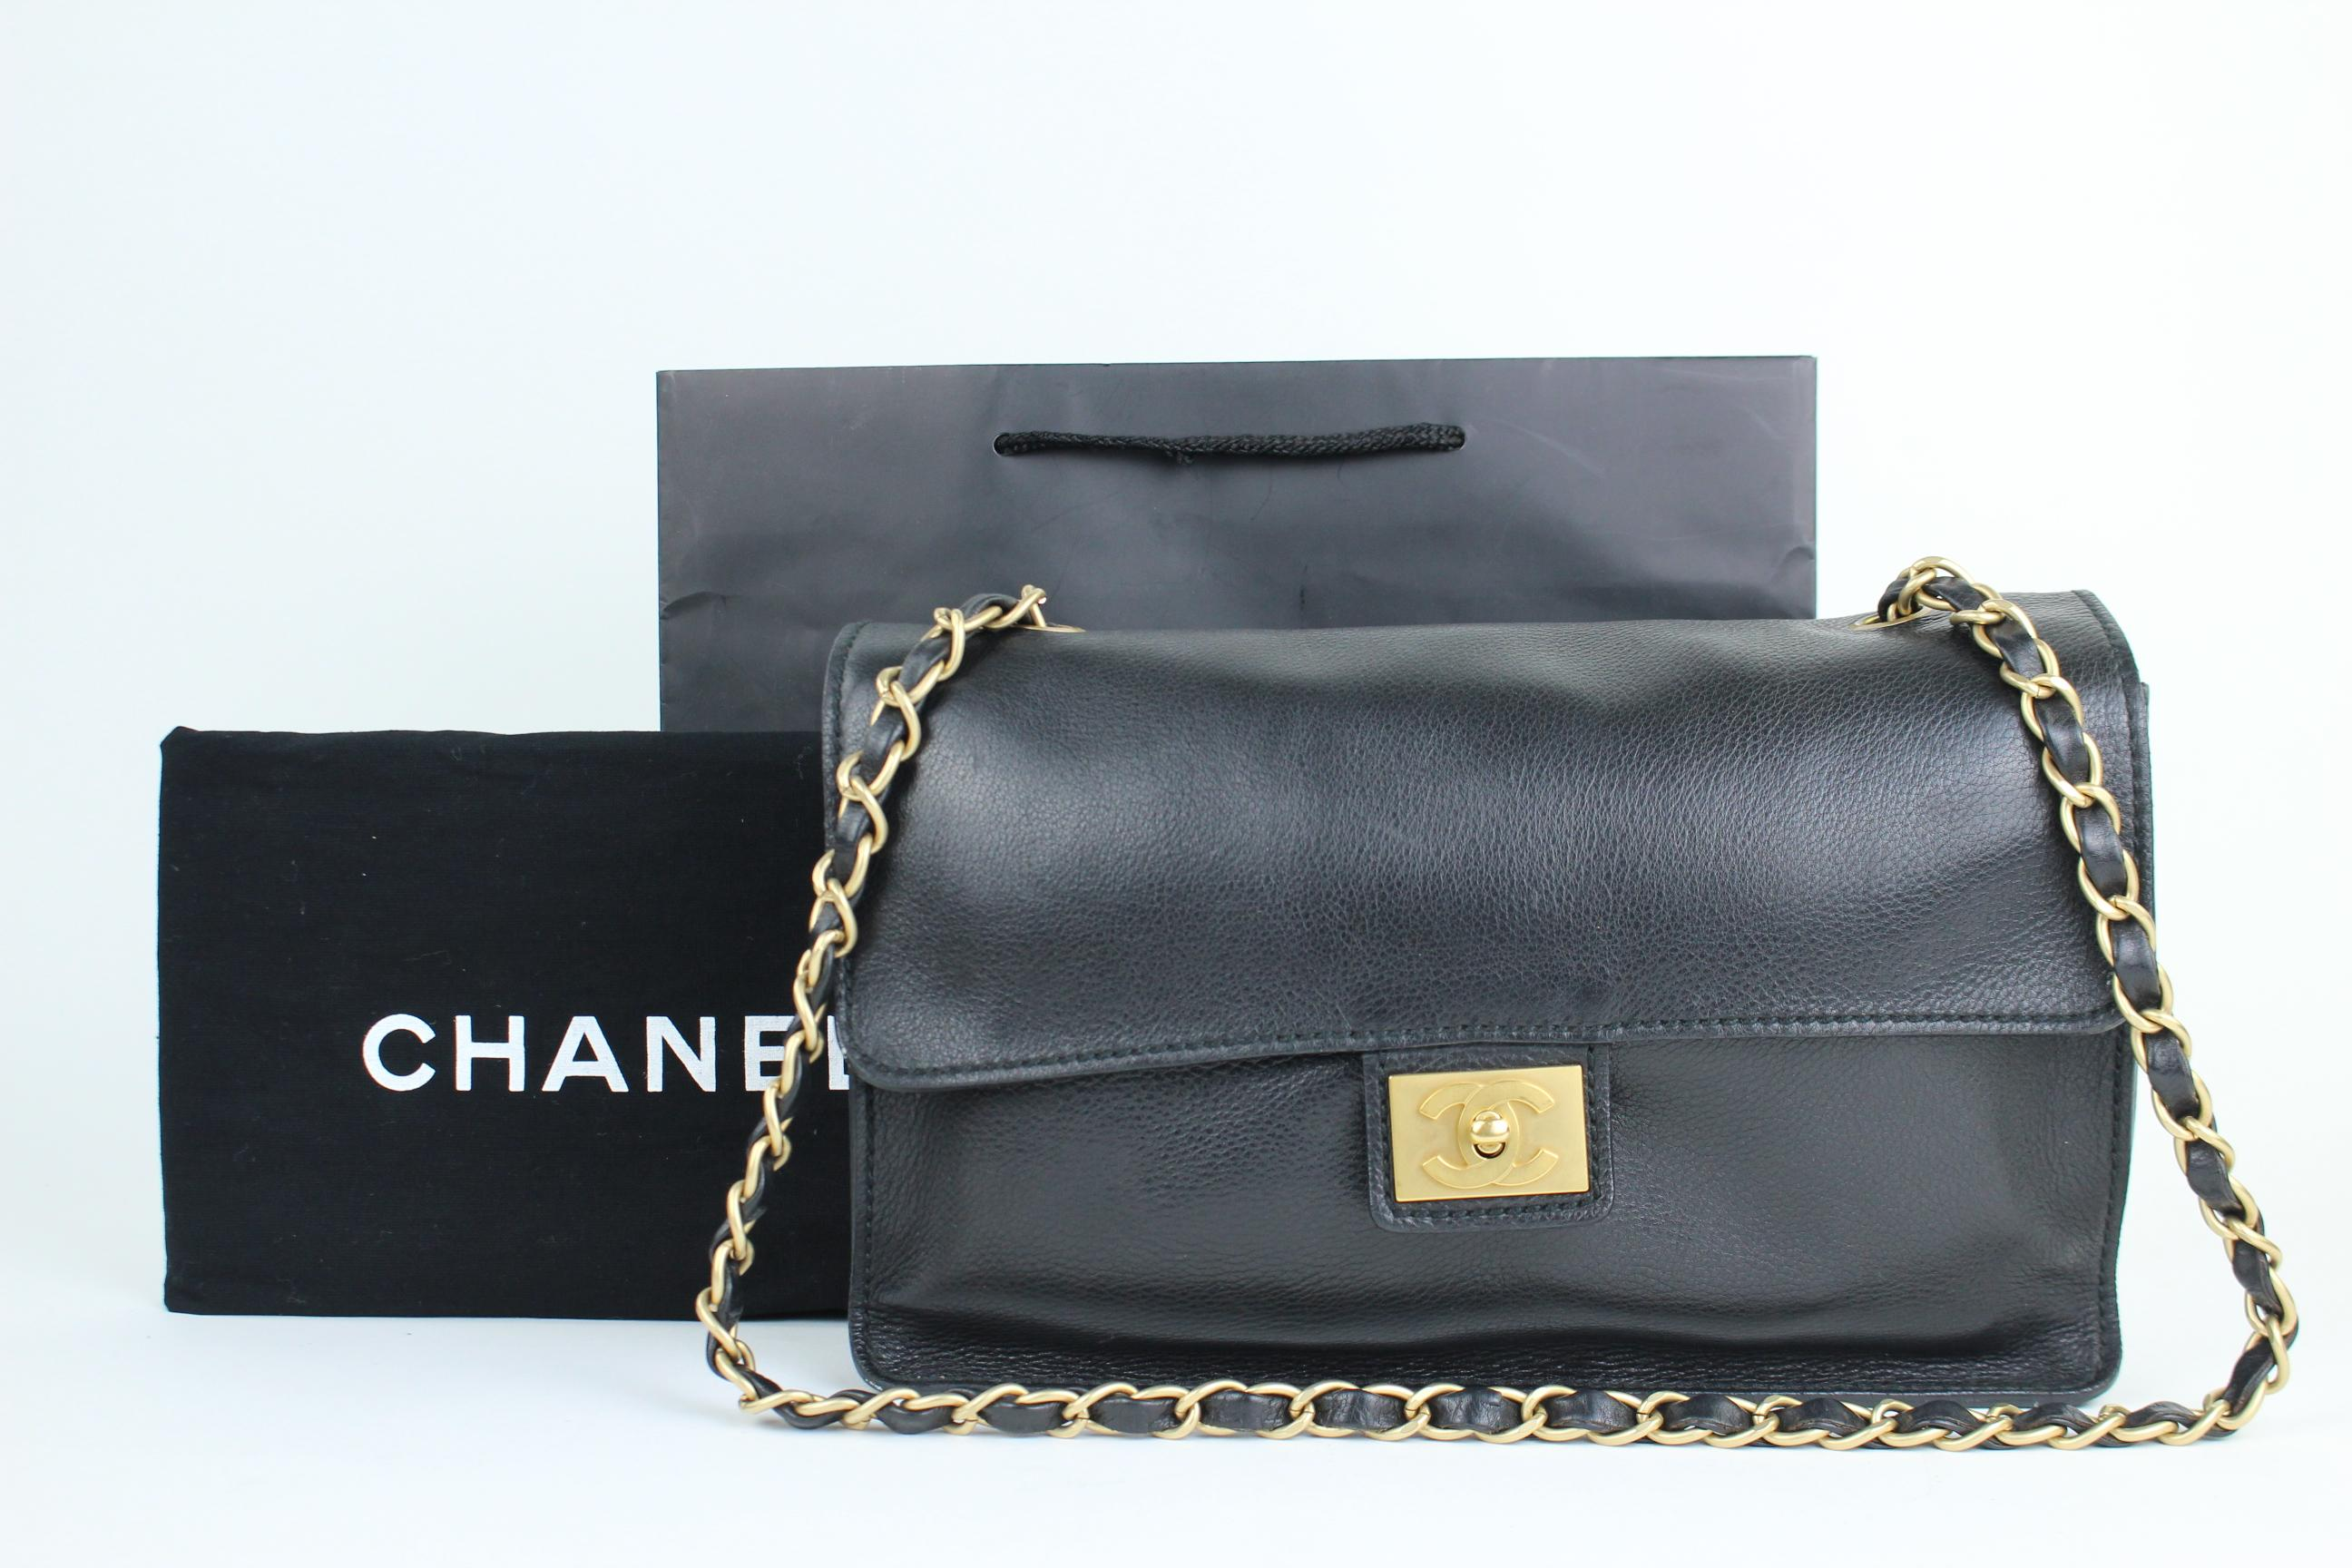 Pre-owned - Camera ostrich handbag Chanel otNxhLD